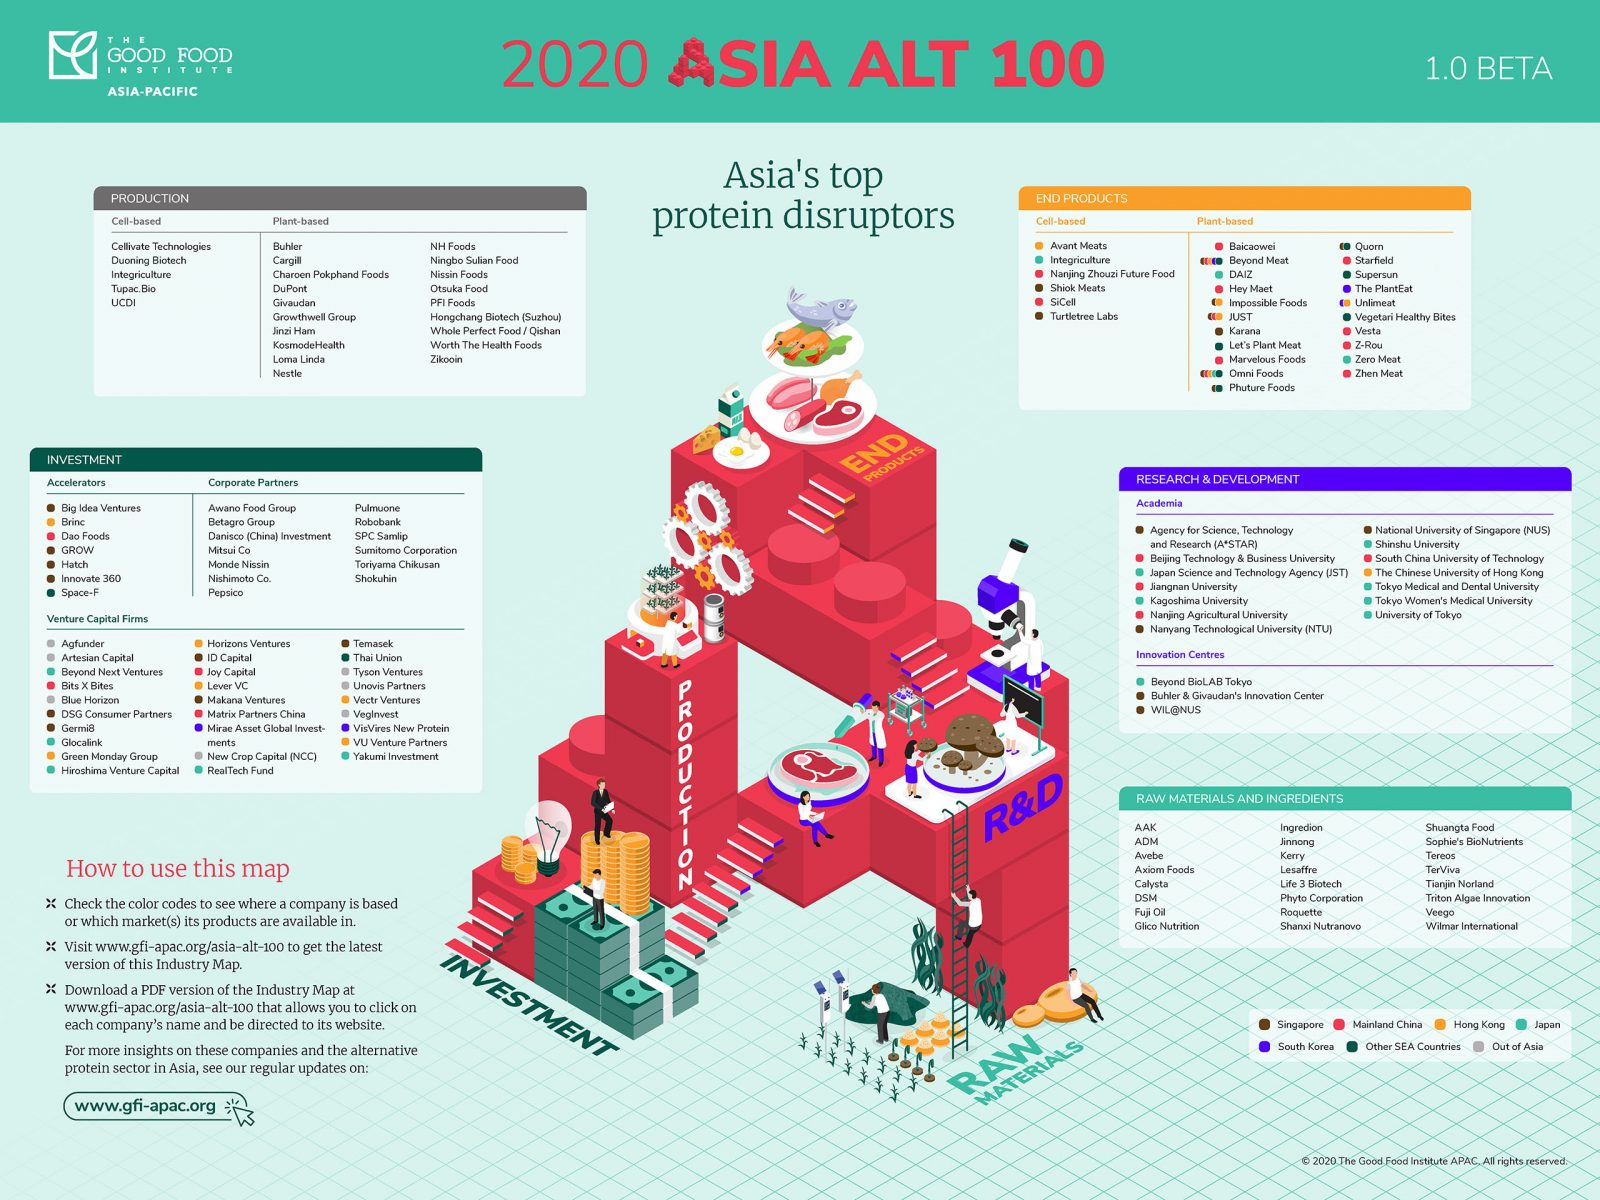 GFI APAC announces the 2020 Asia Alt 100